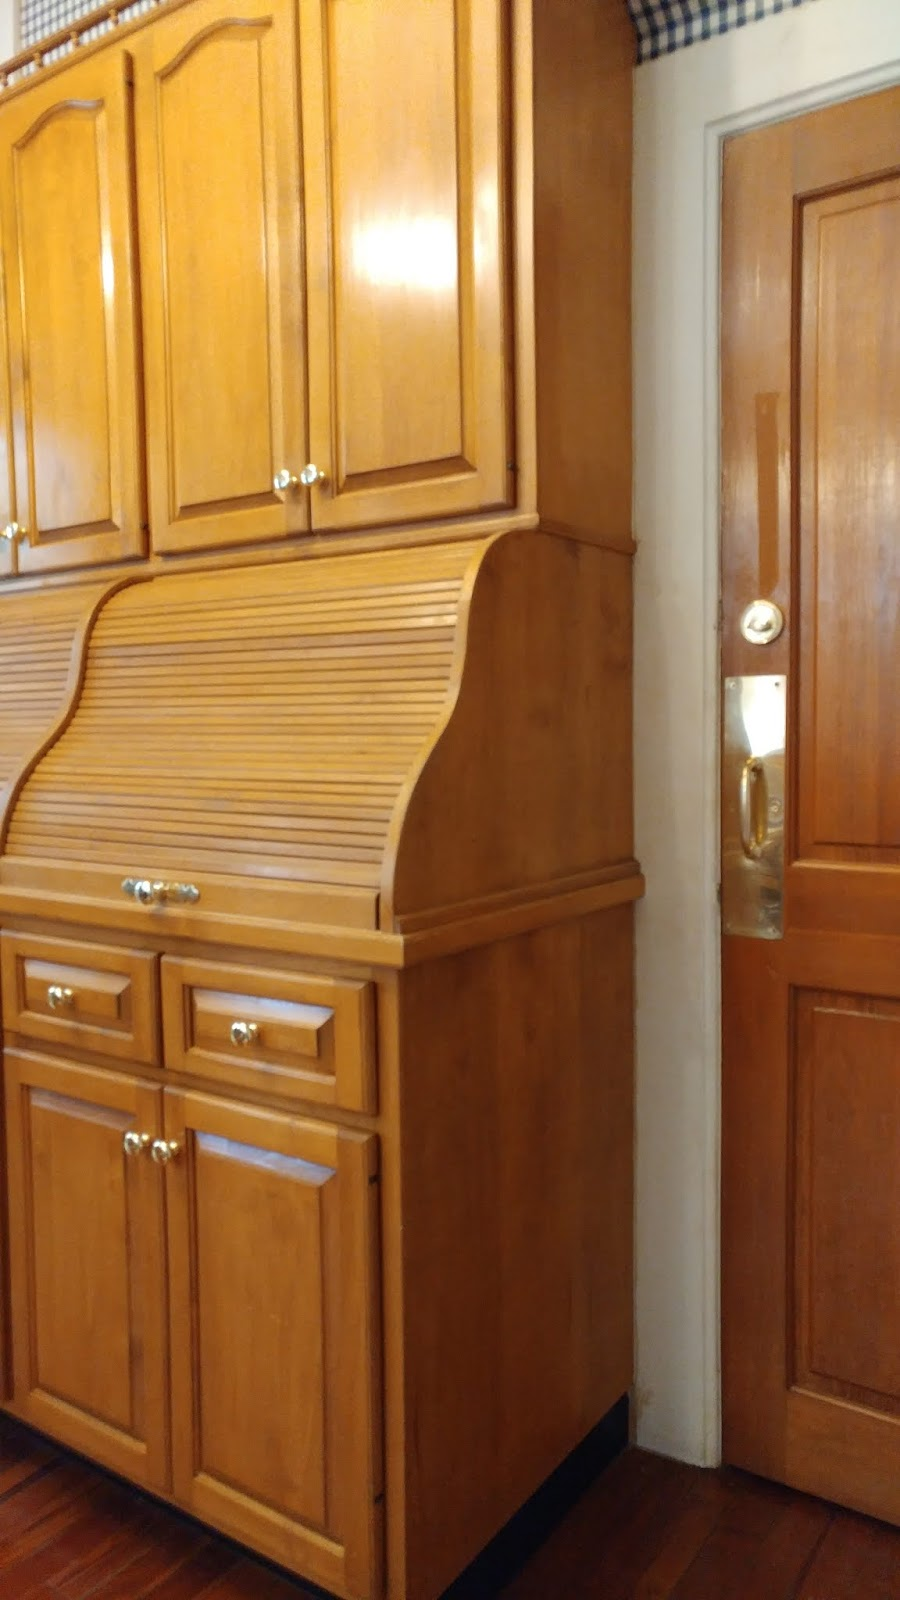 Interiors Unleashed How To Repair A Doorknob Oldhouse Online Our Current Old House Rehab Was Racking Up Expenses So I Decided Keep The Kitchen As Is Until Refrigerator And Or Freezer Give Ghost Maybe